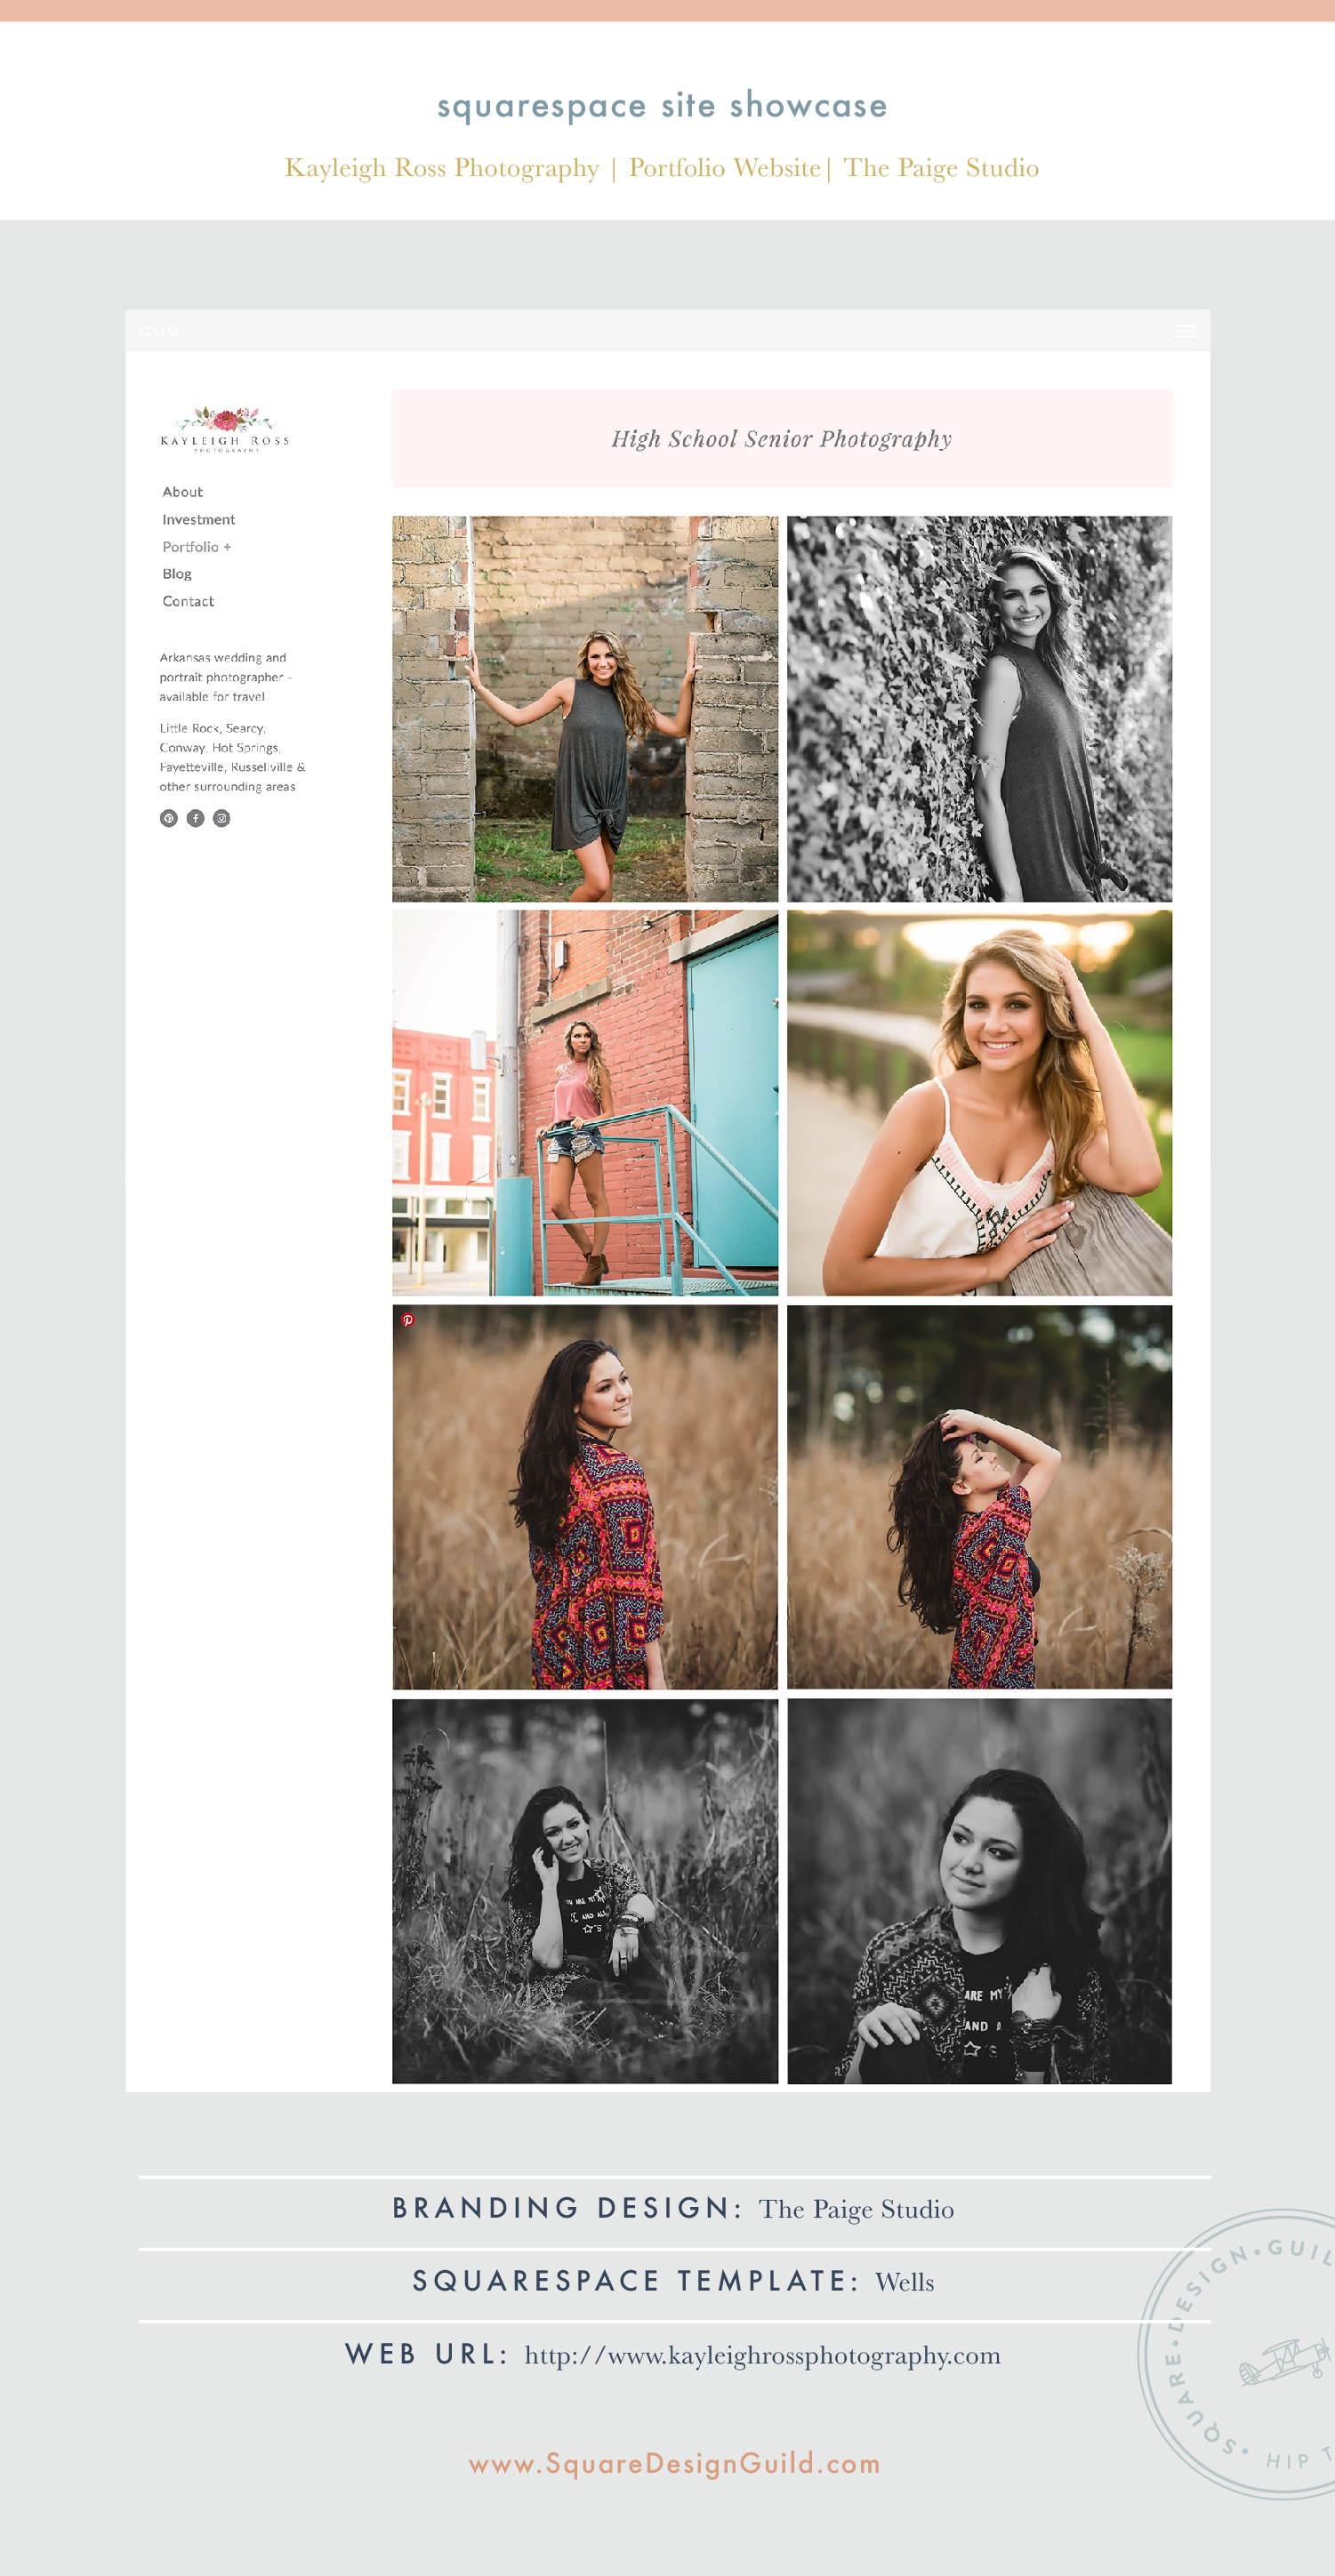 Square Design Guild | Squarespace Site Showcase: Kayleigh Ross Photography | Portfolio Website on Wells